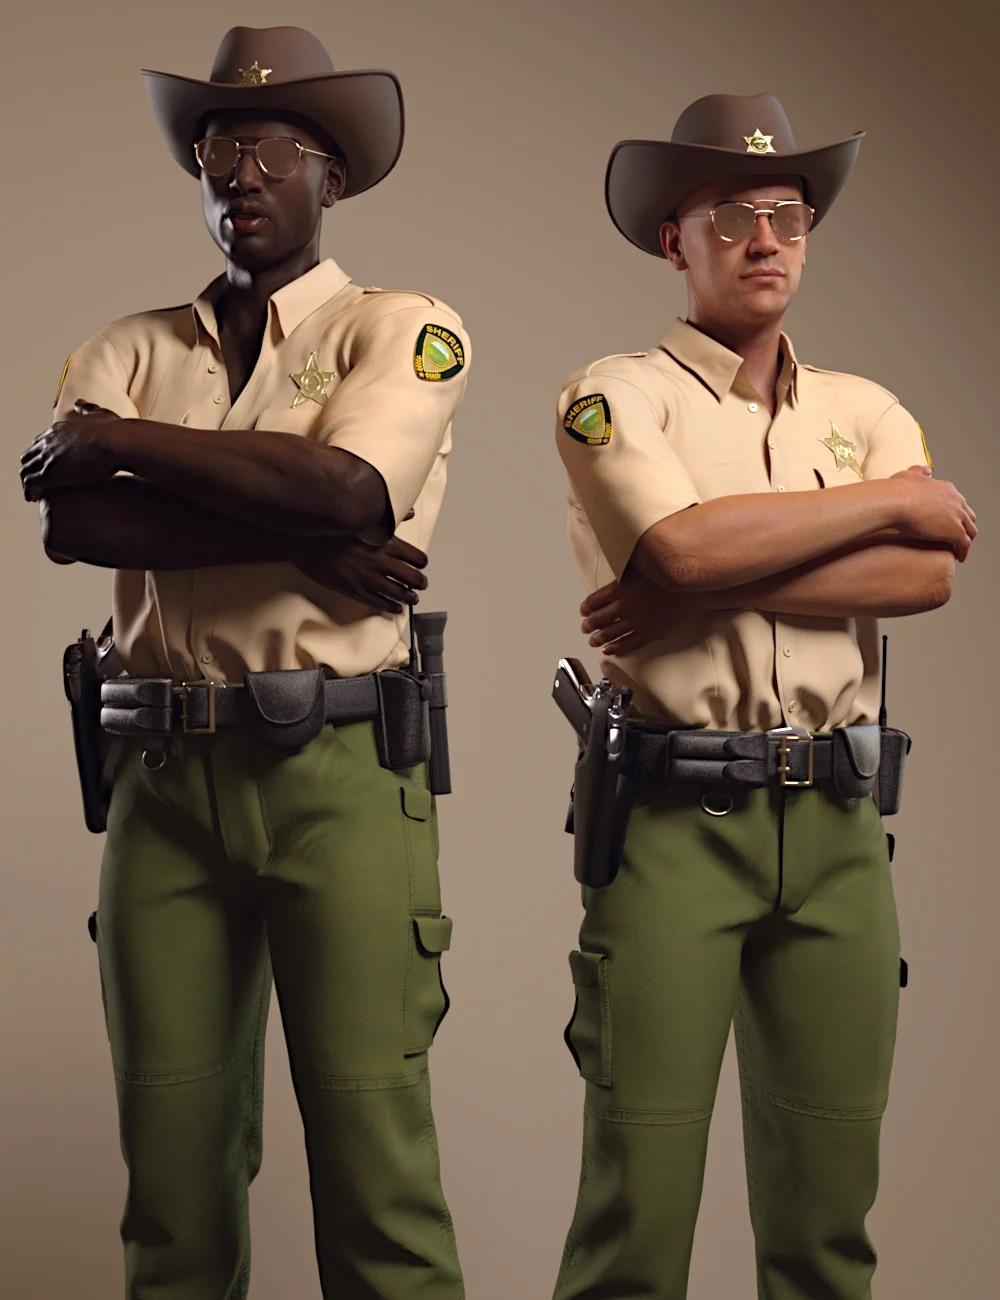 dForce Sheriff Uniform and Props for Genesis 8 Males